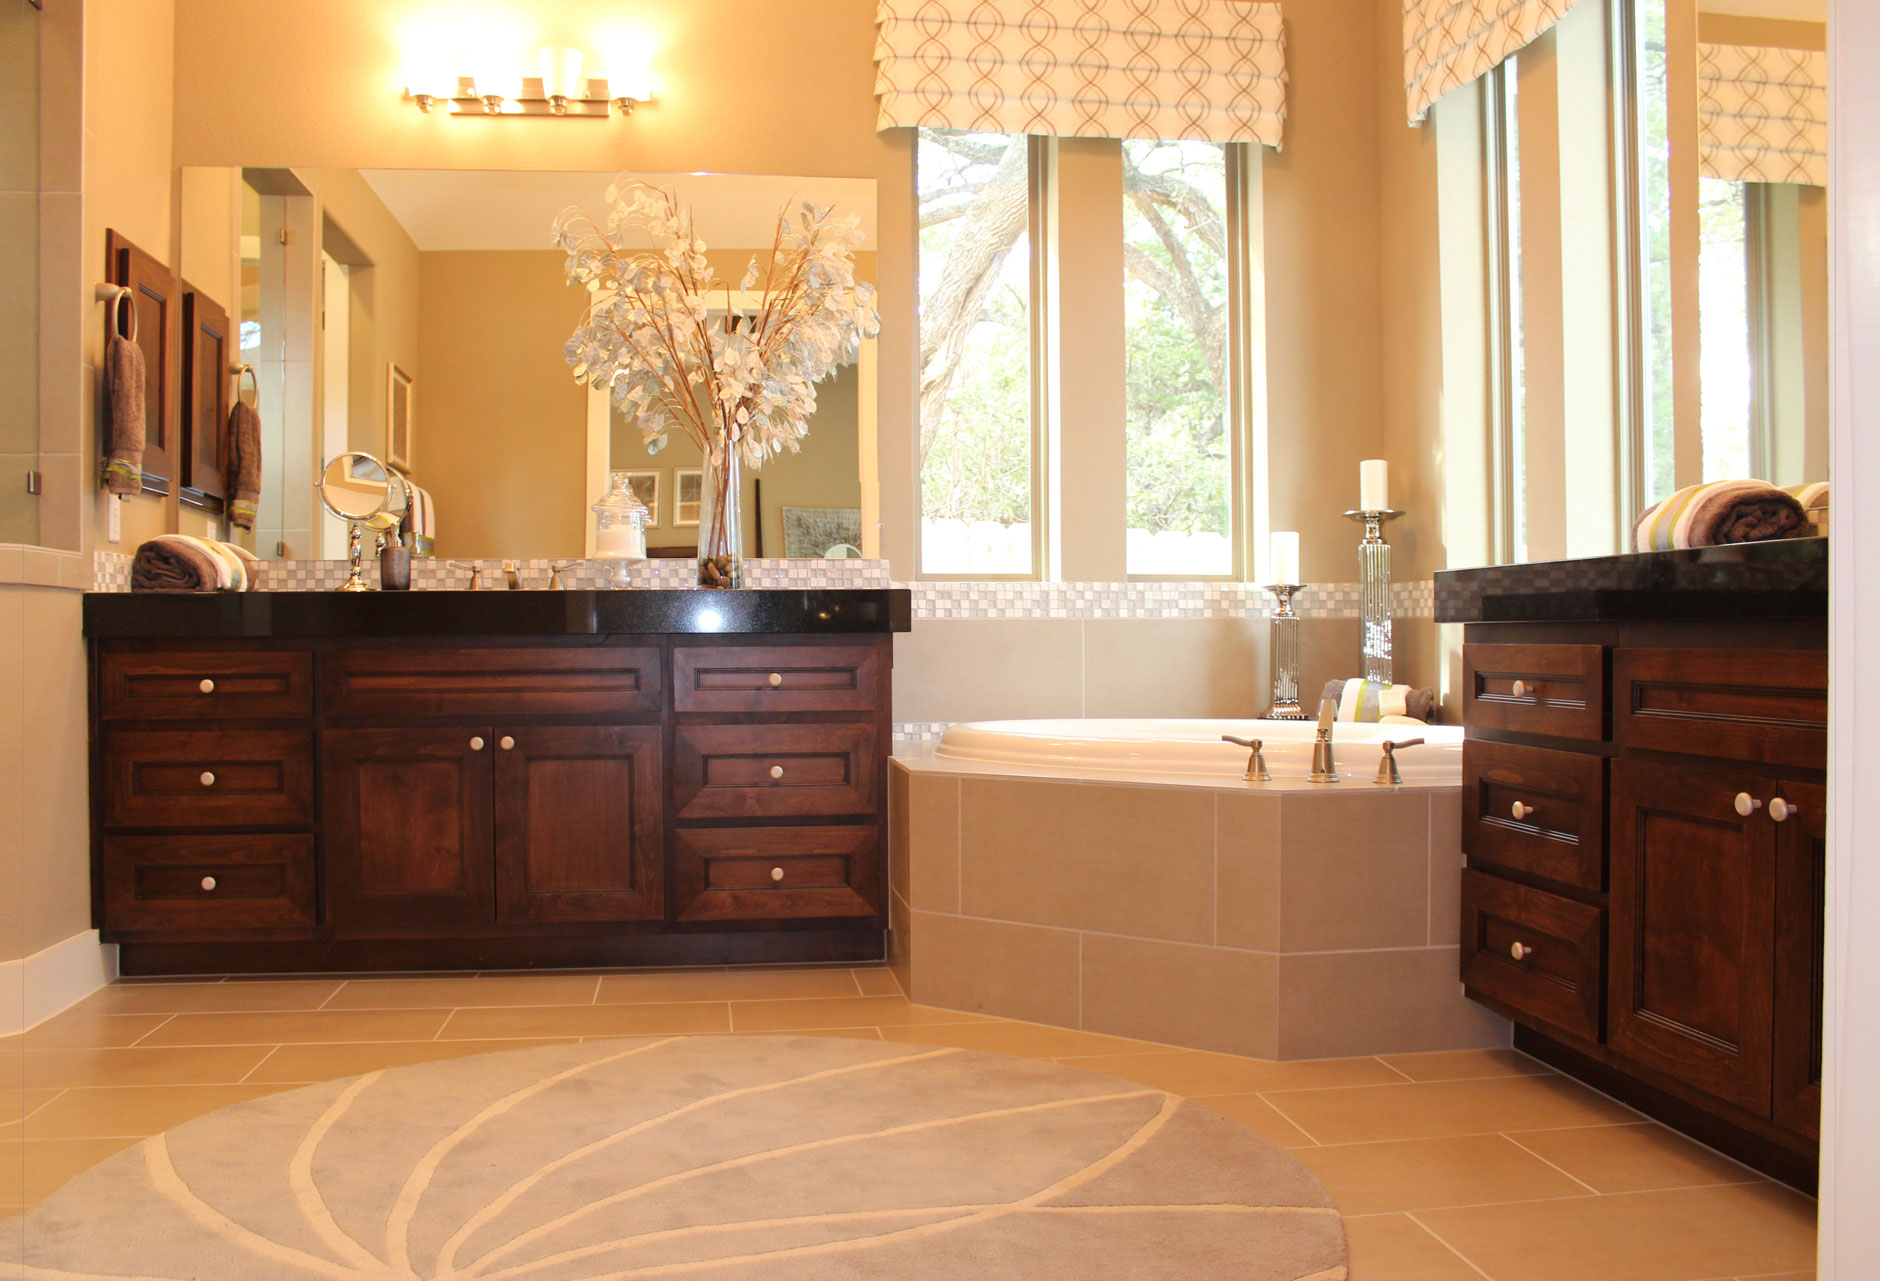 Bathroom vanity cabinets by Burrows Cabinets